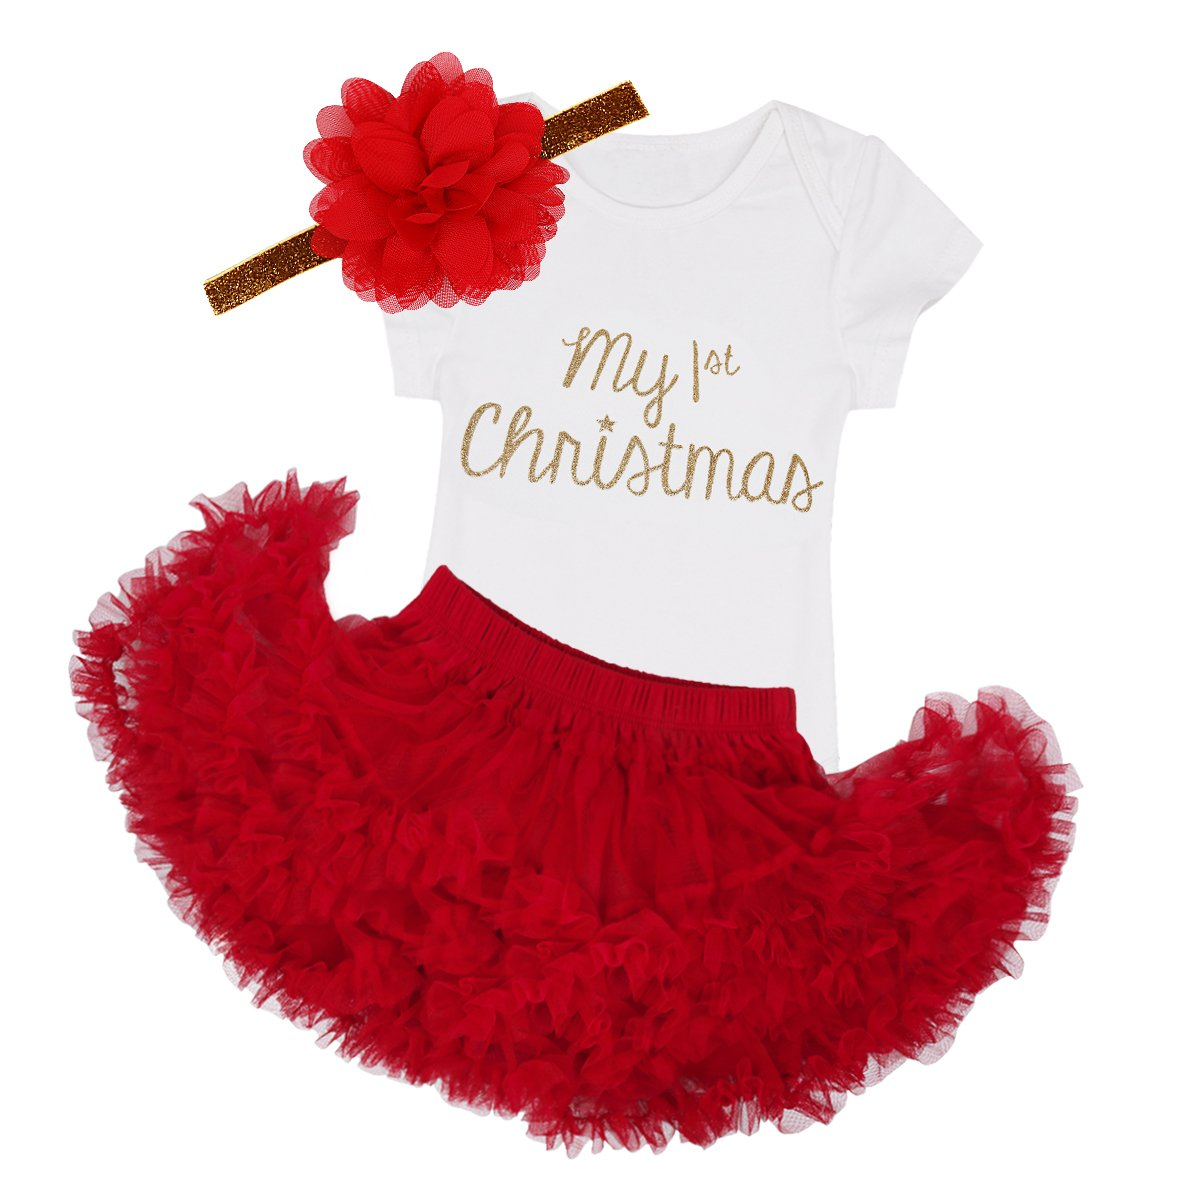 ece85e7cb018 Amazon.com  YiZYiF Baby Girls Outfits Newborn Infant Baby s First Christmas  Tutu Dress Up  Clothing